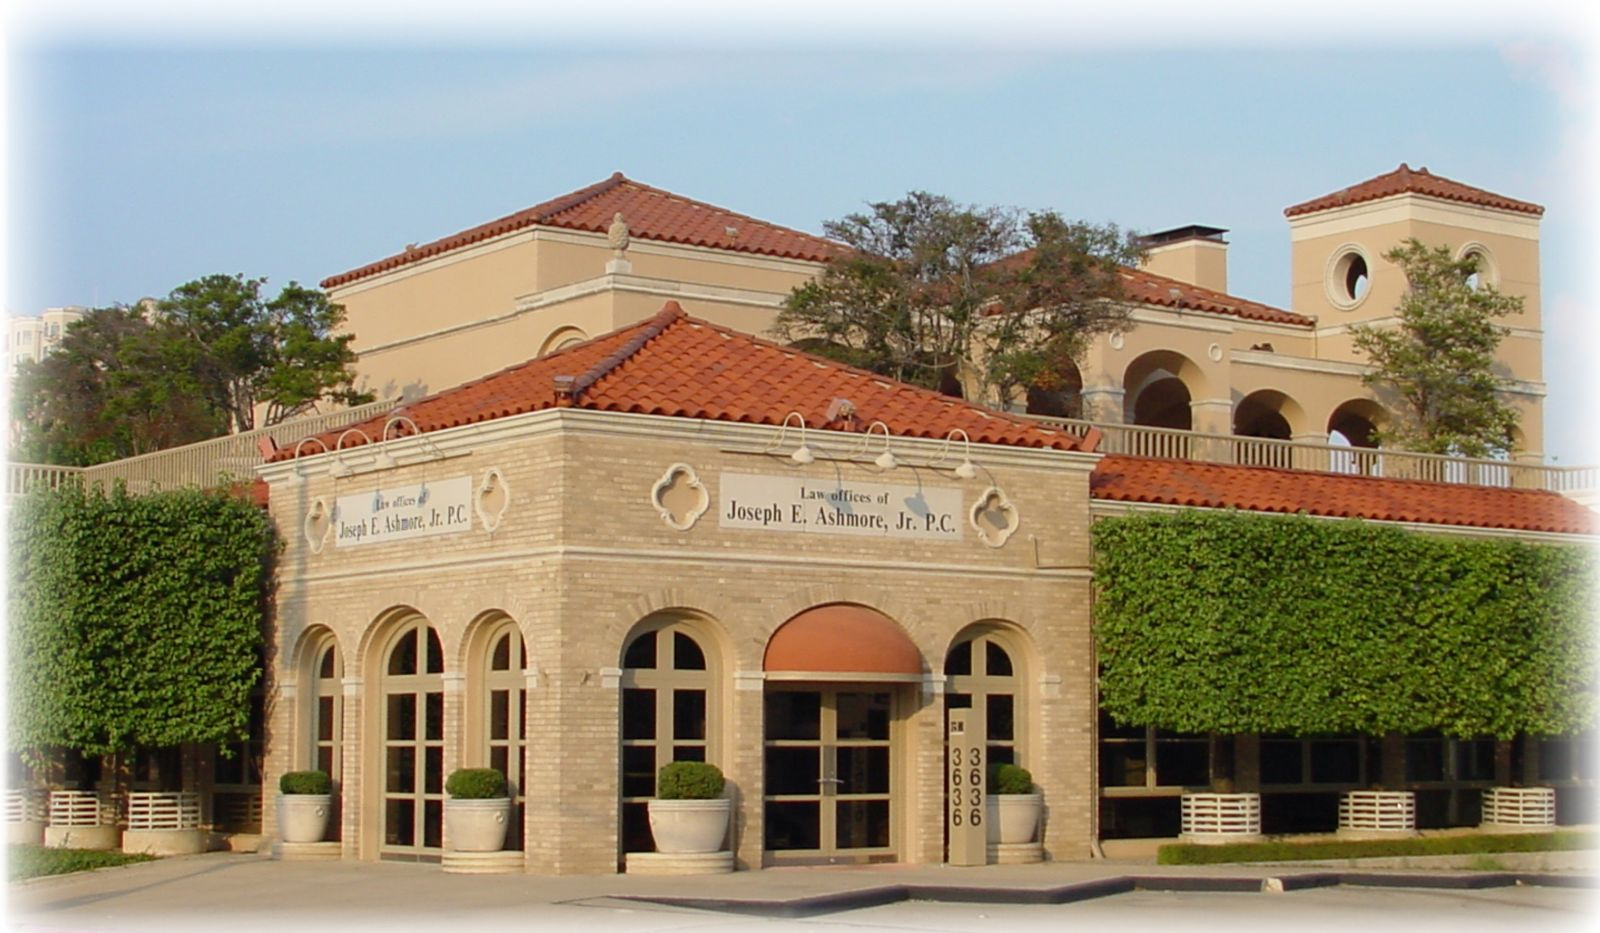 The Ashmore Law Firm Building Legal Services